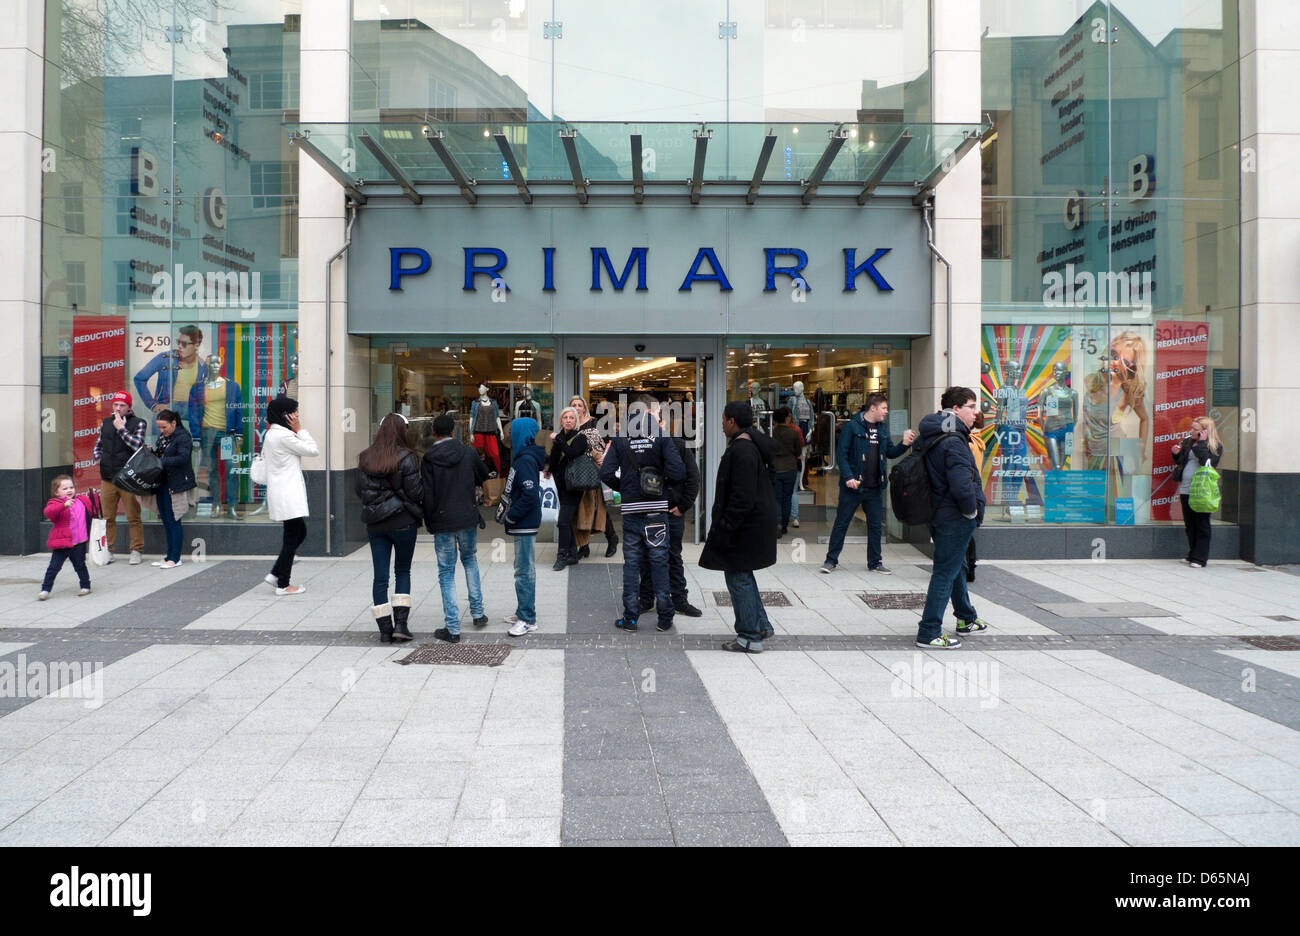 People outside the exterior view of the Primark store front storefront in Queen Street Cardiff Wales UK  KATHY DEWITT - Stock Image